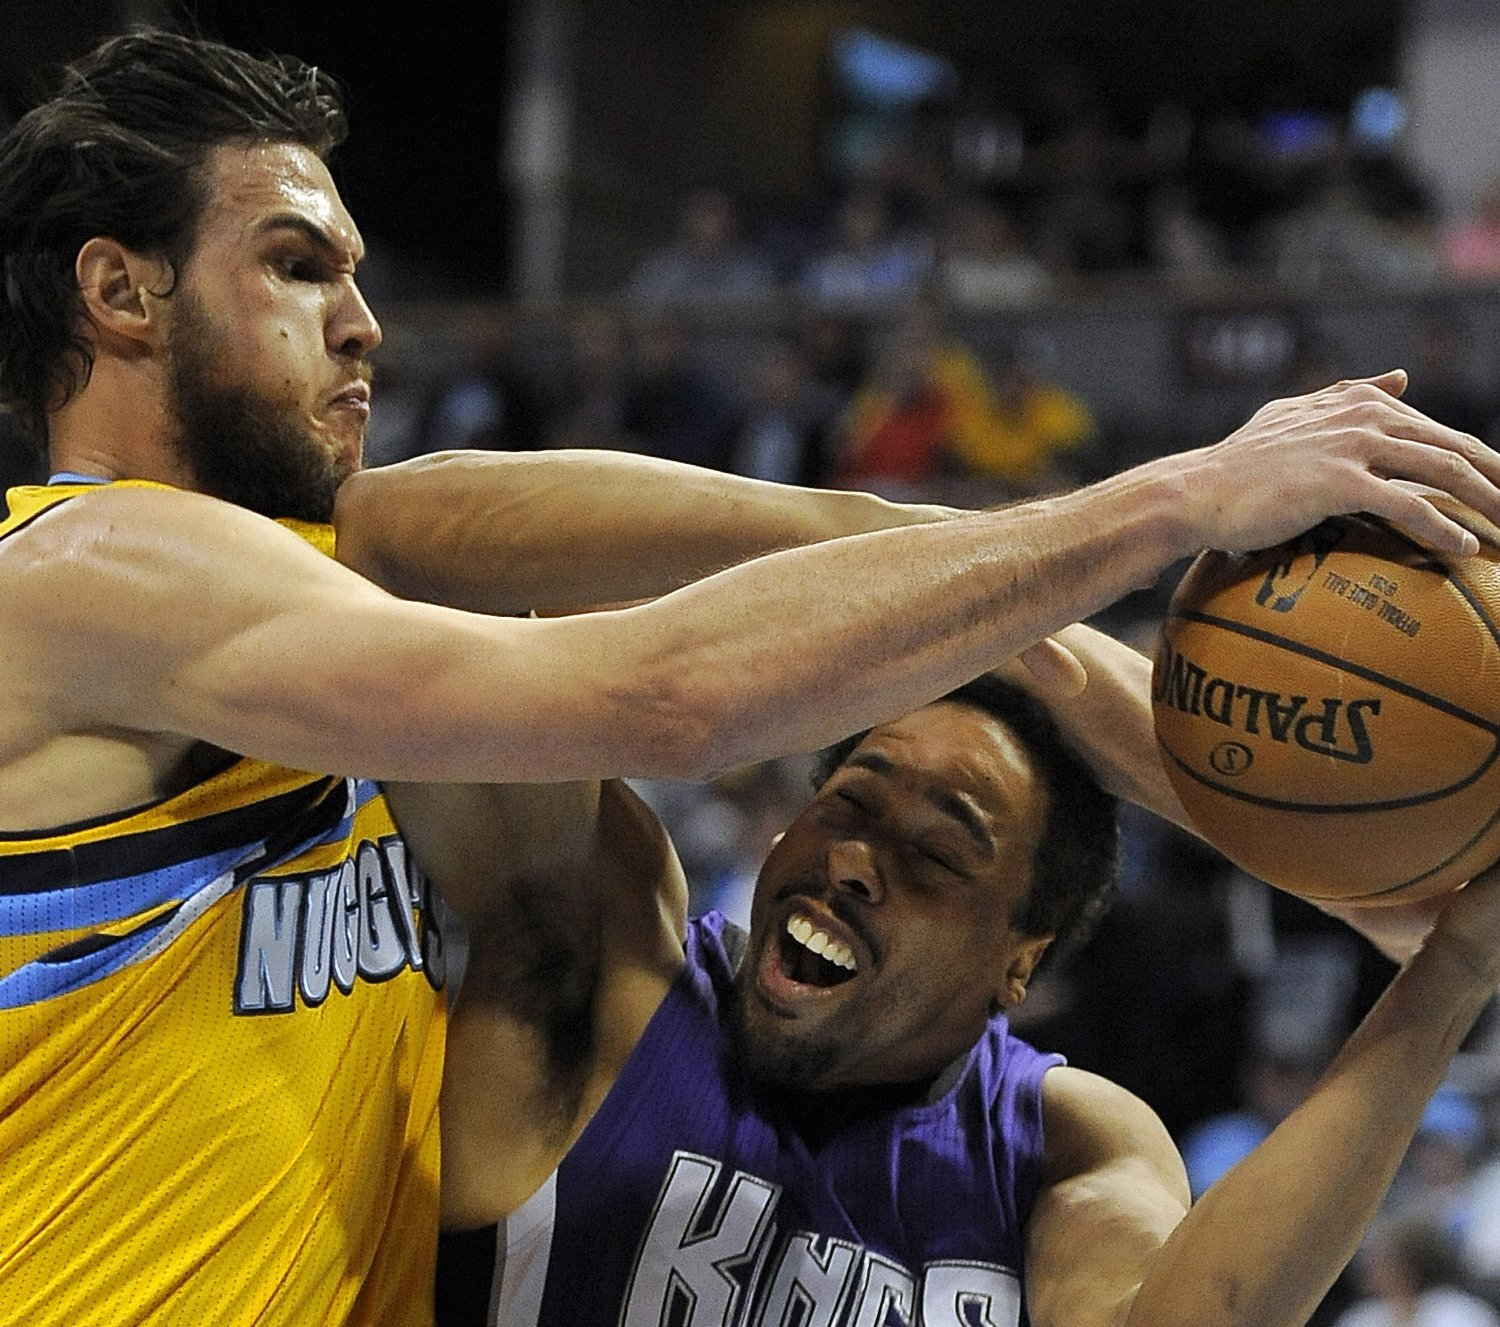 Sacramento Kings Vs. Denver Nuggets 4/12/15: Video